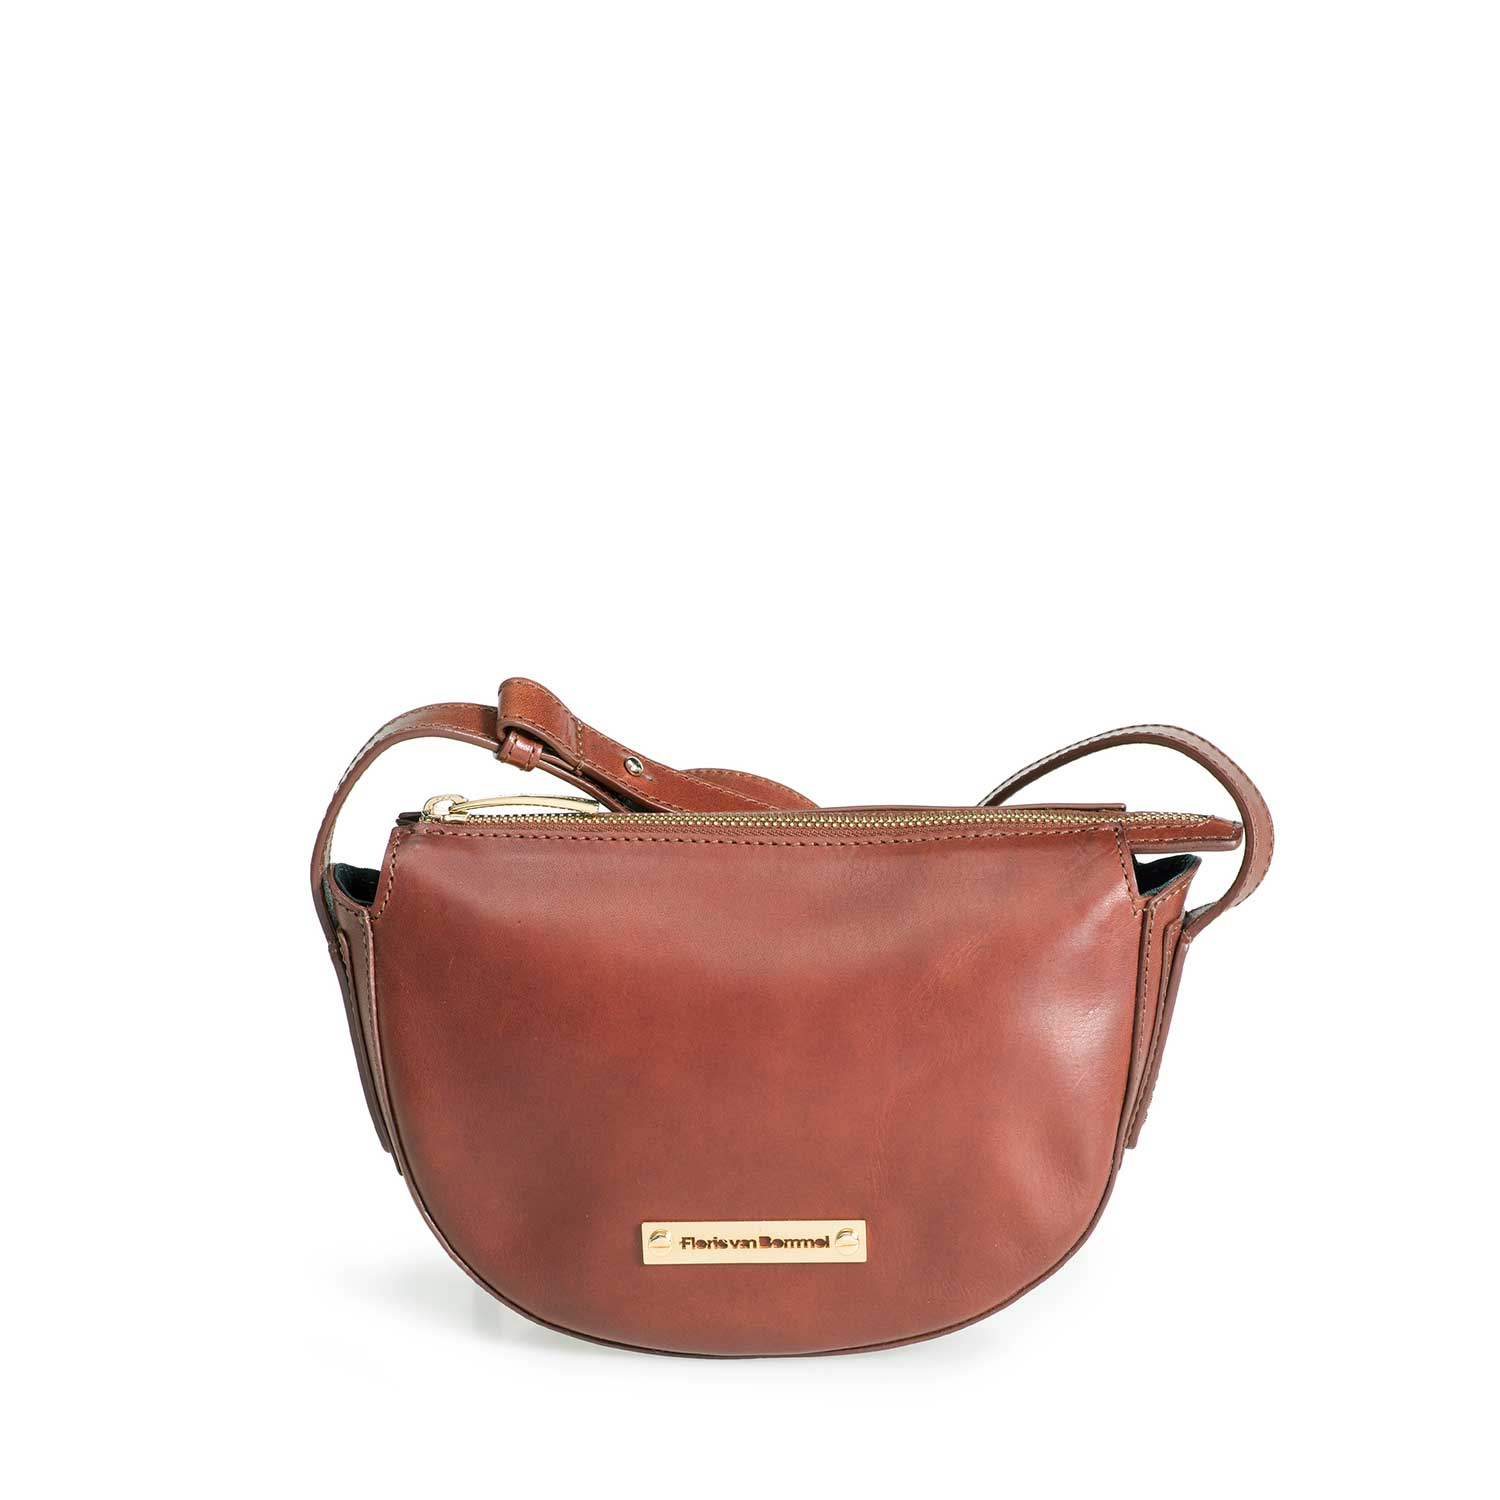 89013/01 - Brown leather cross body bag